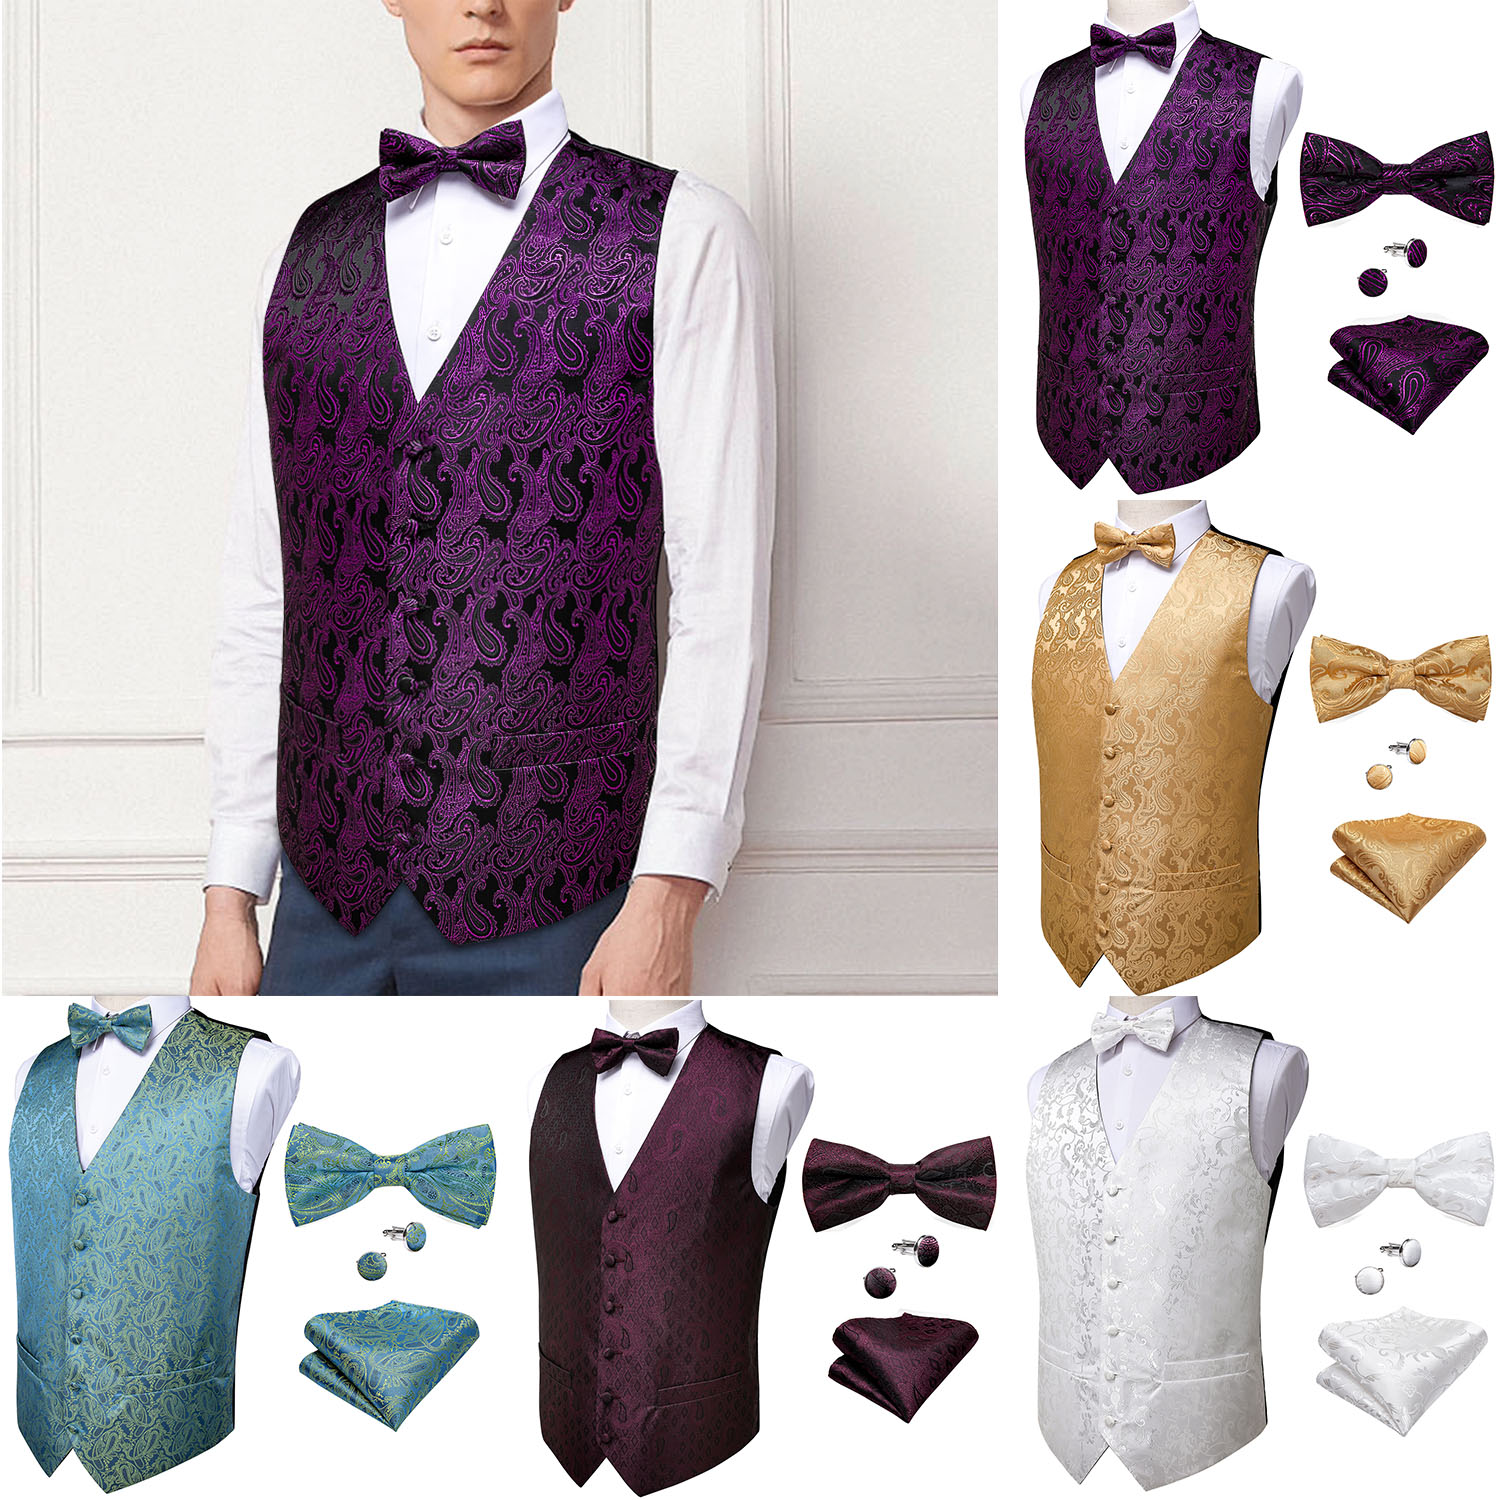 Mens Classic Purple Gold Paisley Jacquard Folral Silk Waistcoat Vests Handkerchief Bow Tie Vest Suit Pocket Square Set DiBanGu